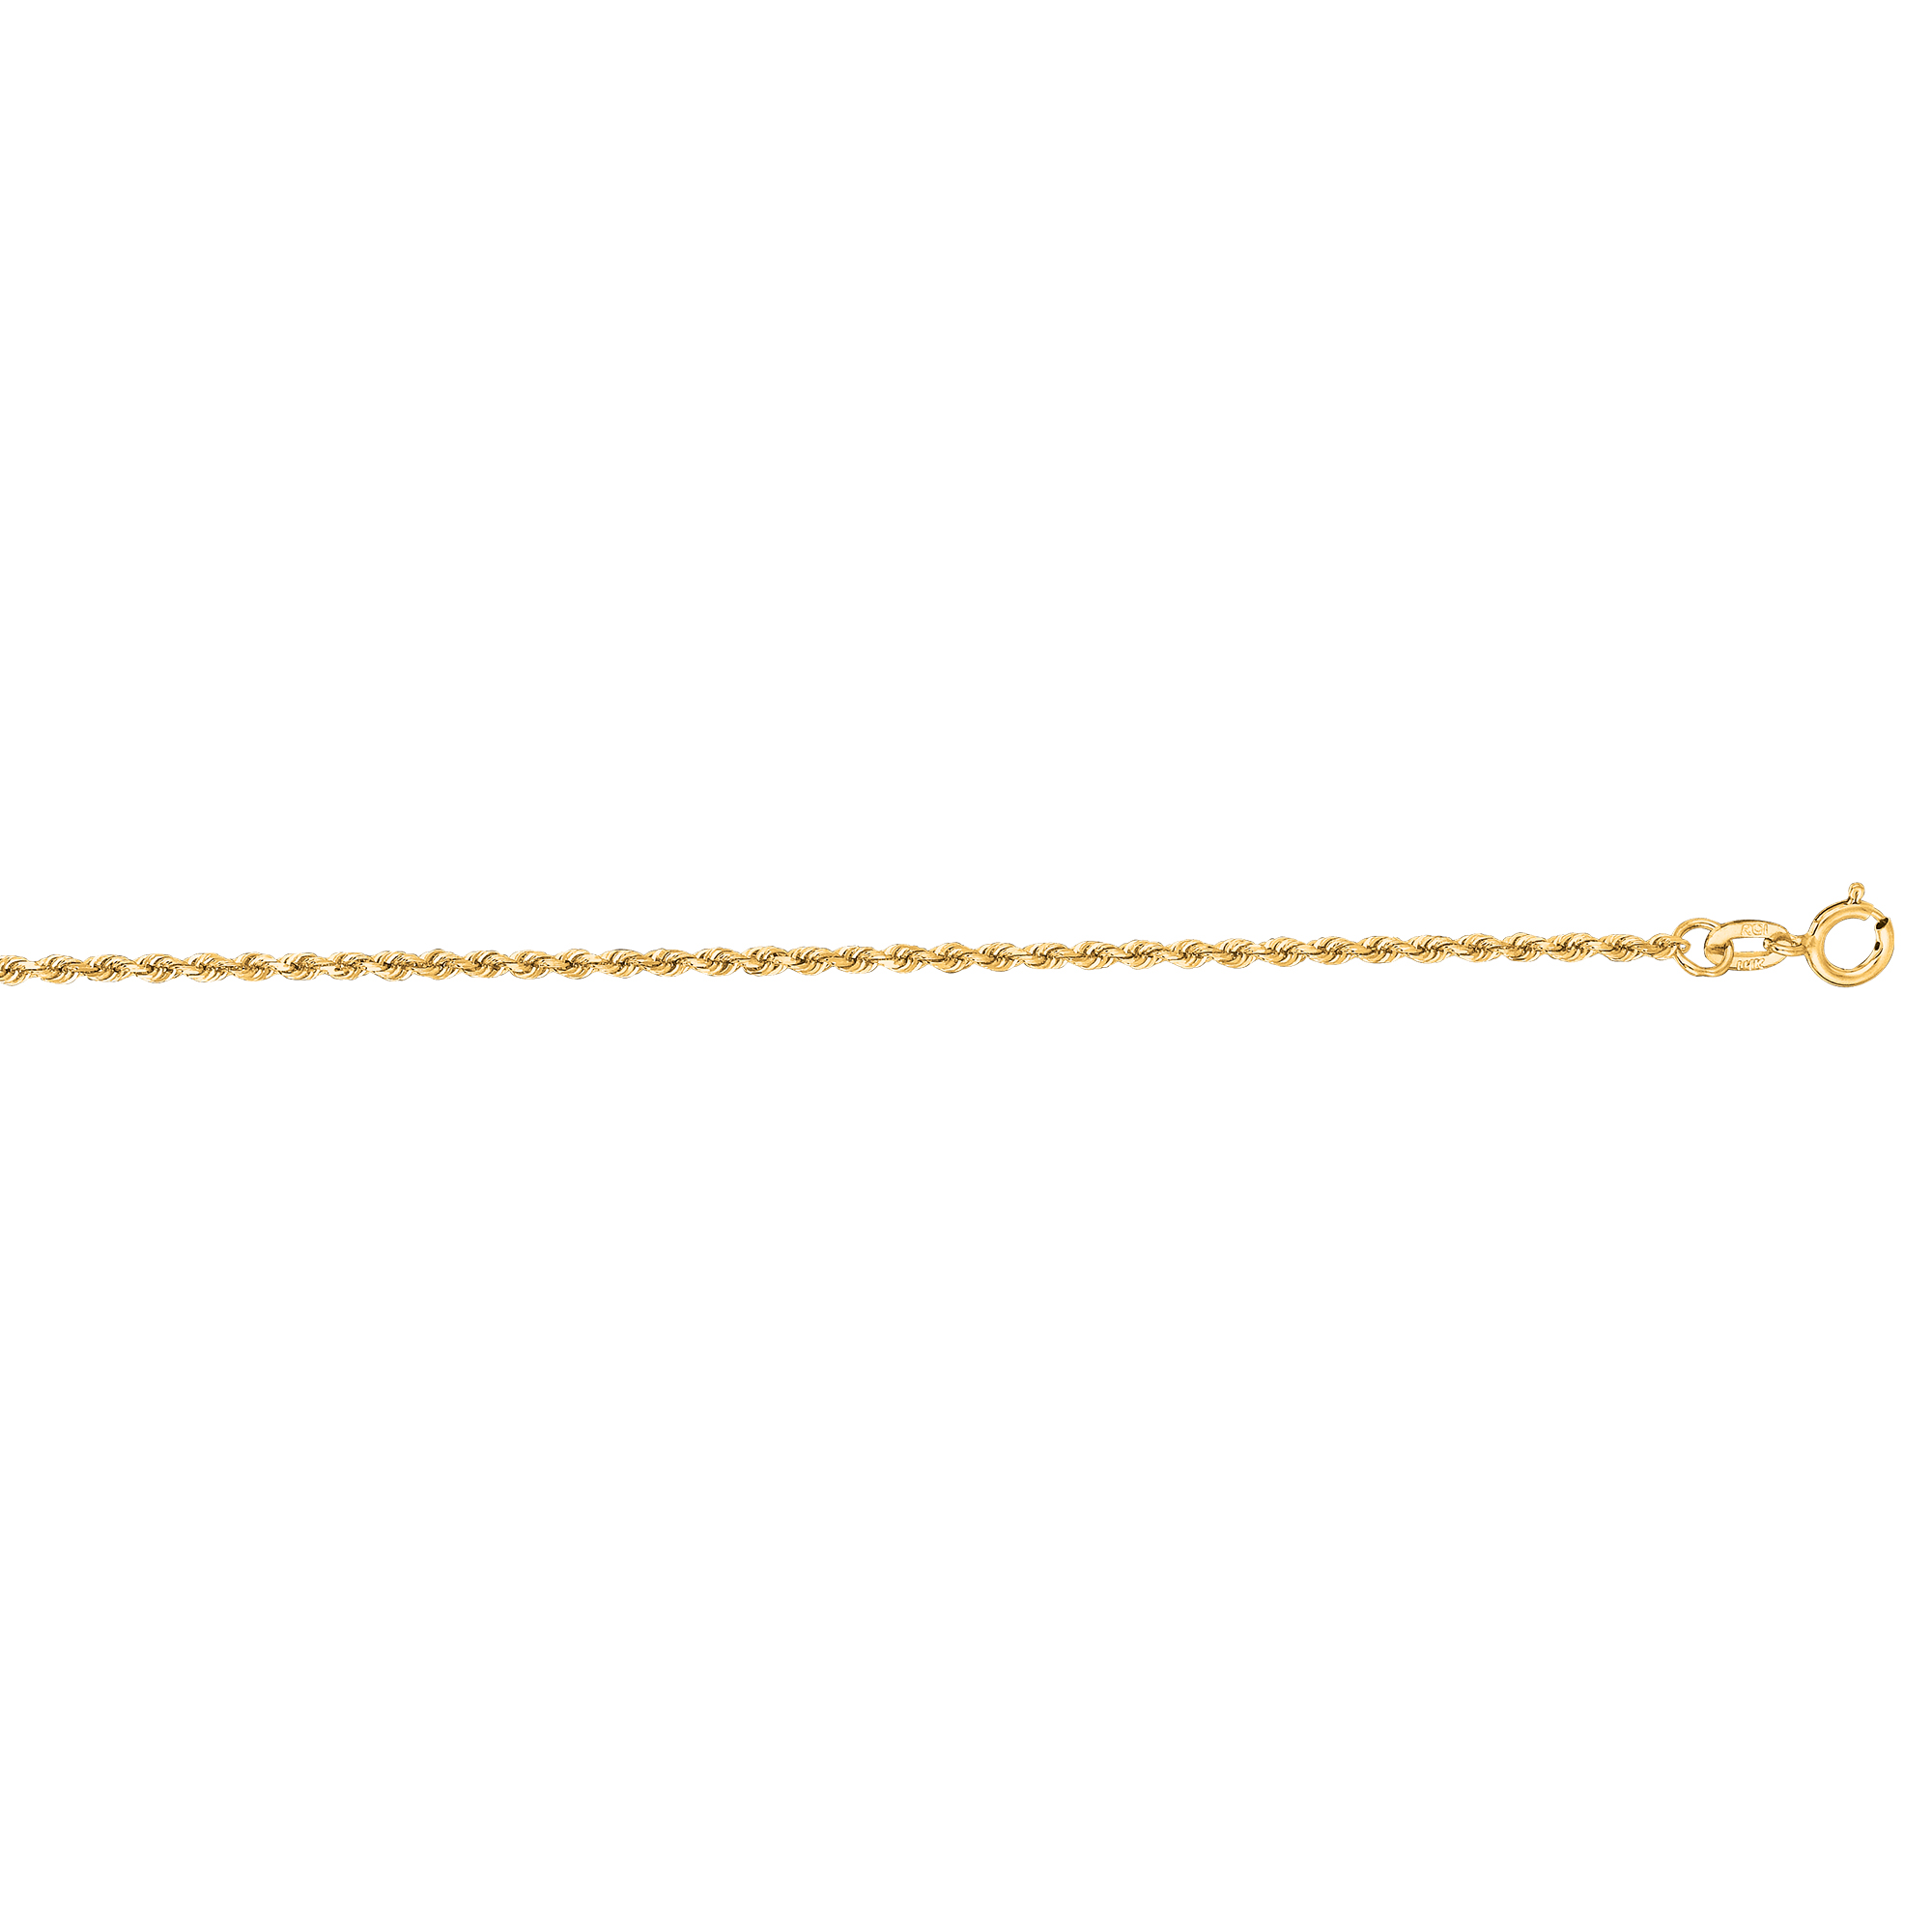 36071b13efcb LUXURMAN Solid 10k Gold Rope Chain For Men   Women Diamond Cut 1.3mm Yellow  Image